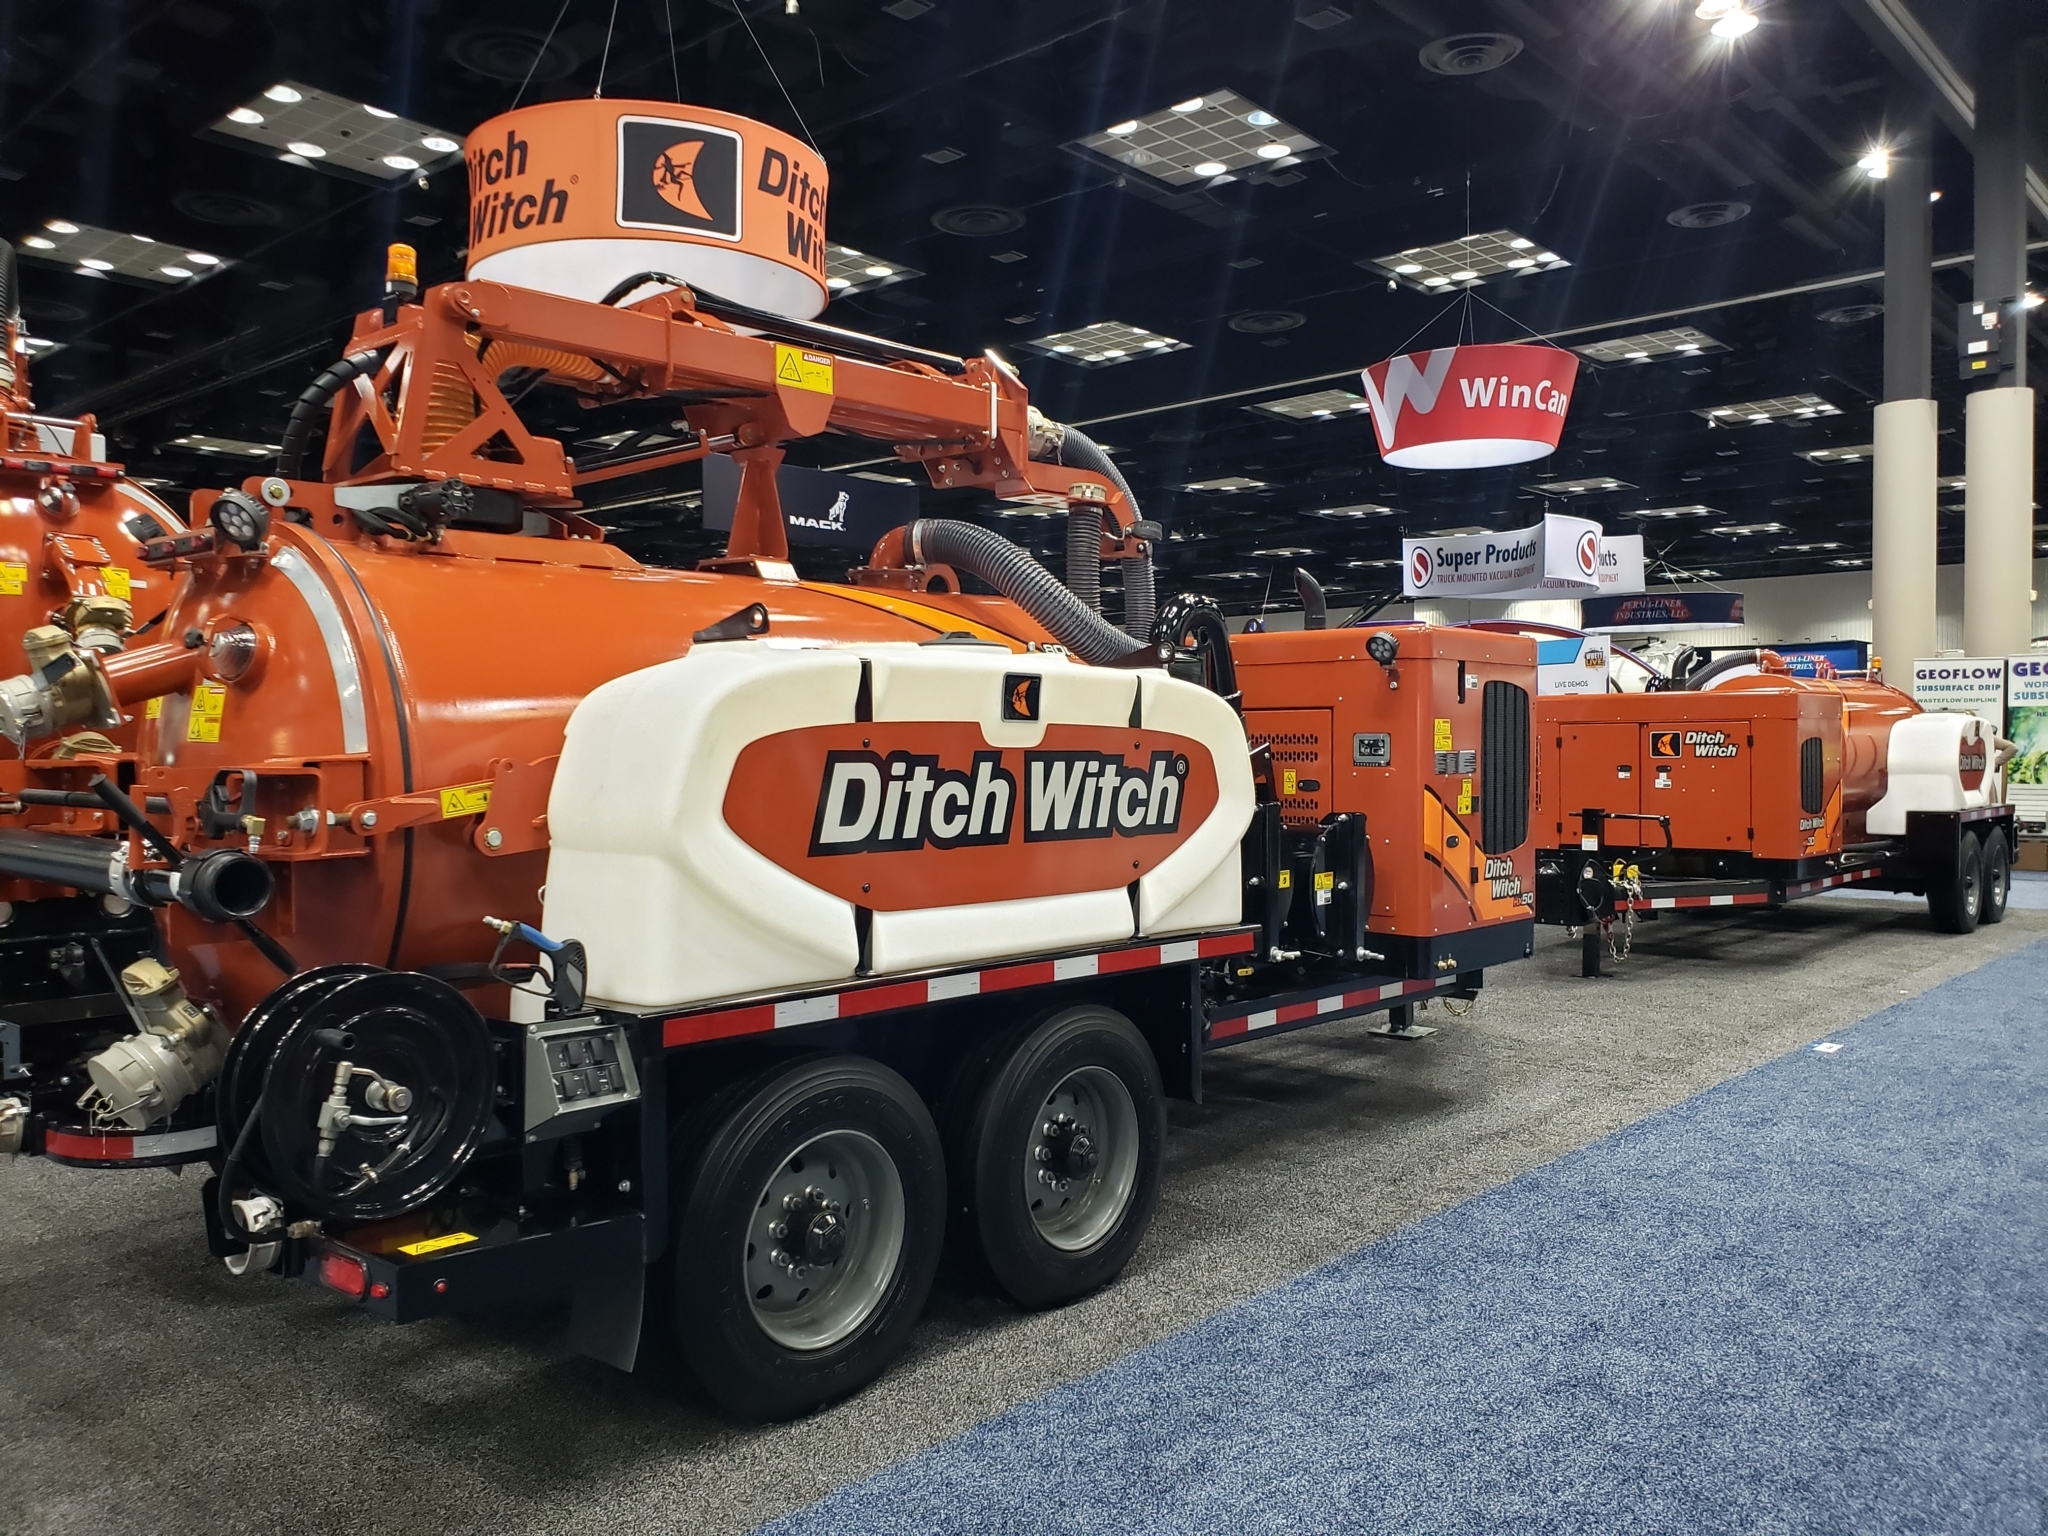 The Ditch Witch HX50, left, and HX30 trailer vacuum units were on display at the Water & Wastewater Equipment, Treatment & Transport (WWETT) Show in Indianapolis. These are just two models of trailer vacuum excavators the company has available. Trailer units make it possible for more contractors to use vacuum excavation without the price point of a large hydroexcavator.